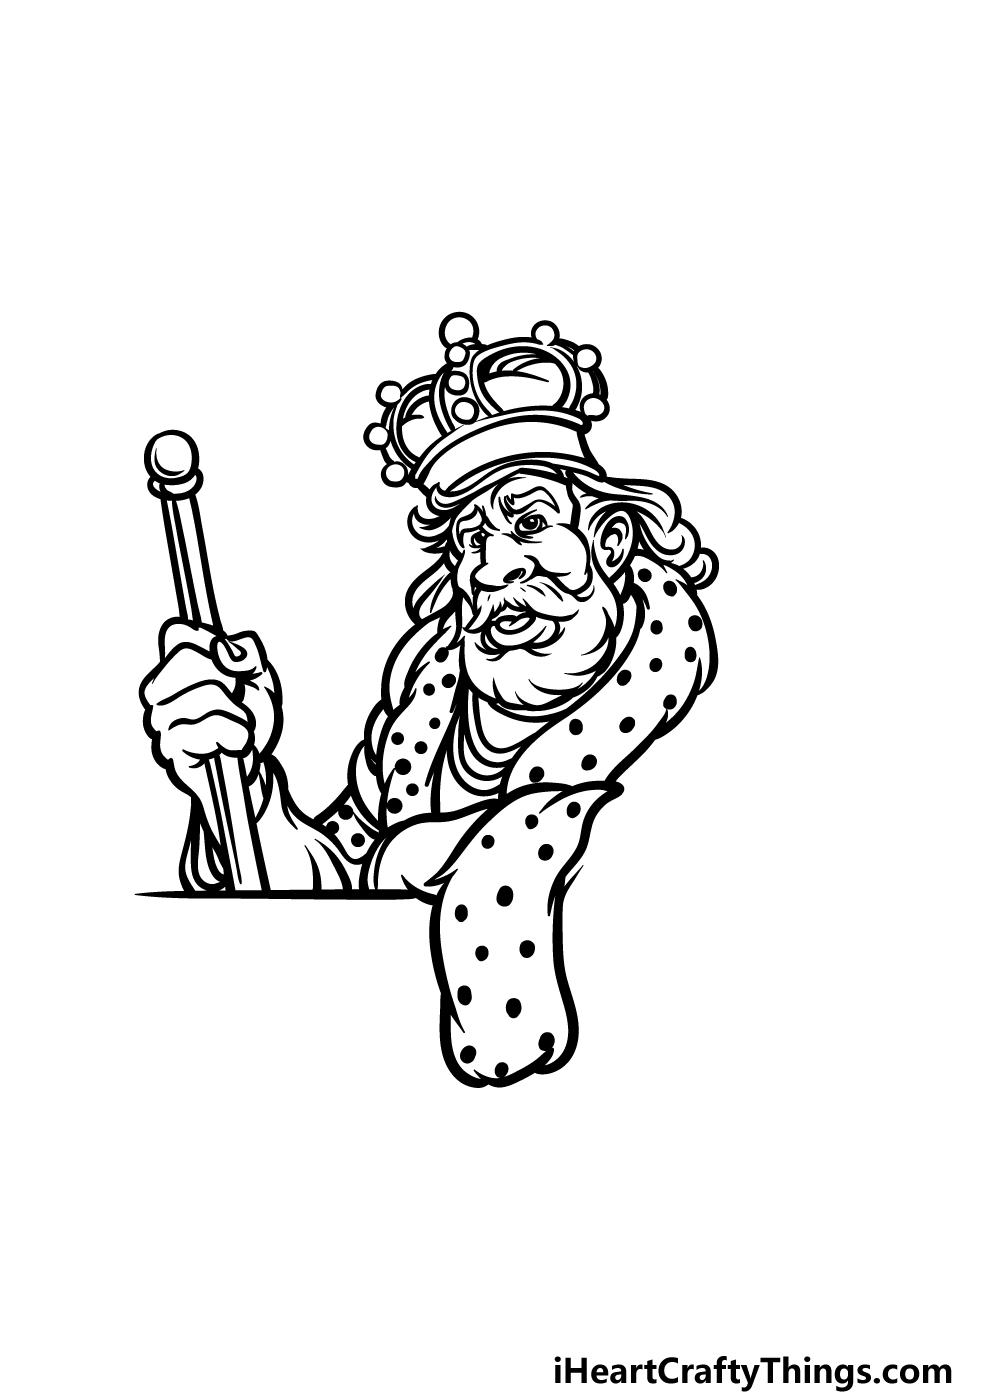 how to draw a King step 4